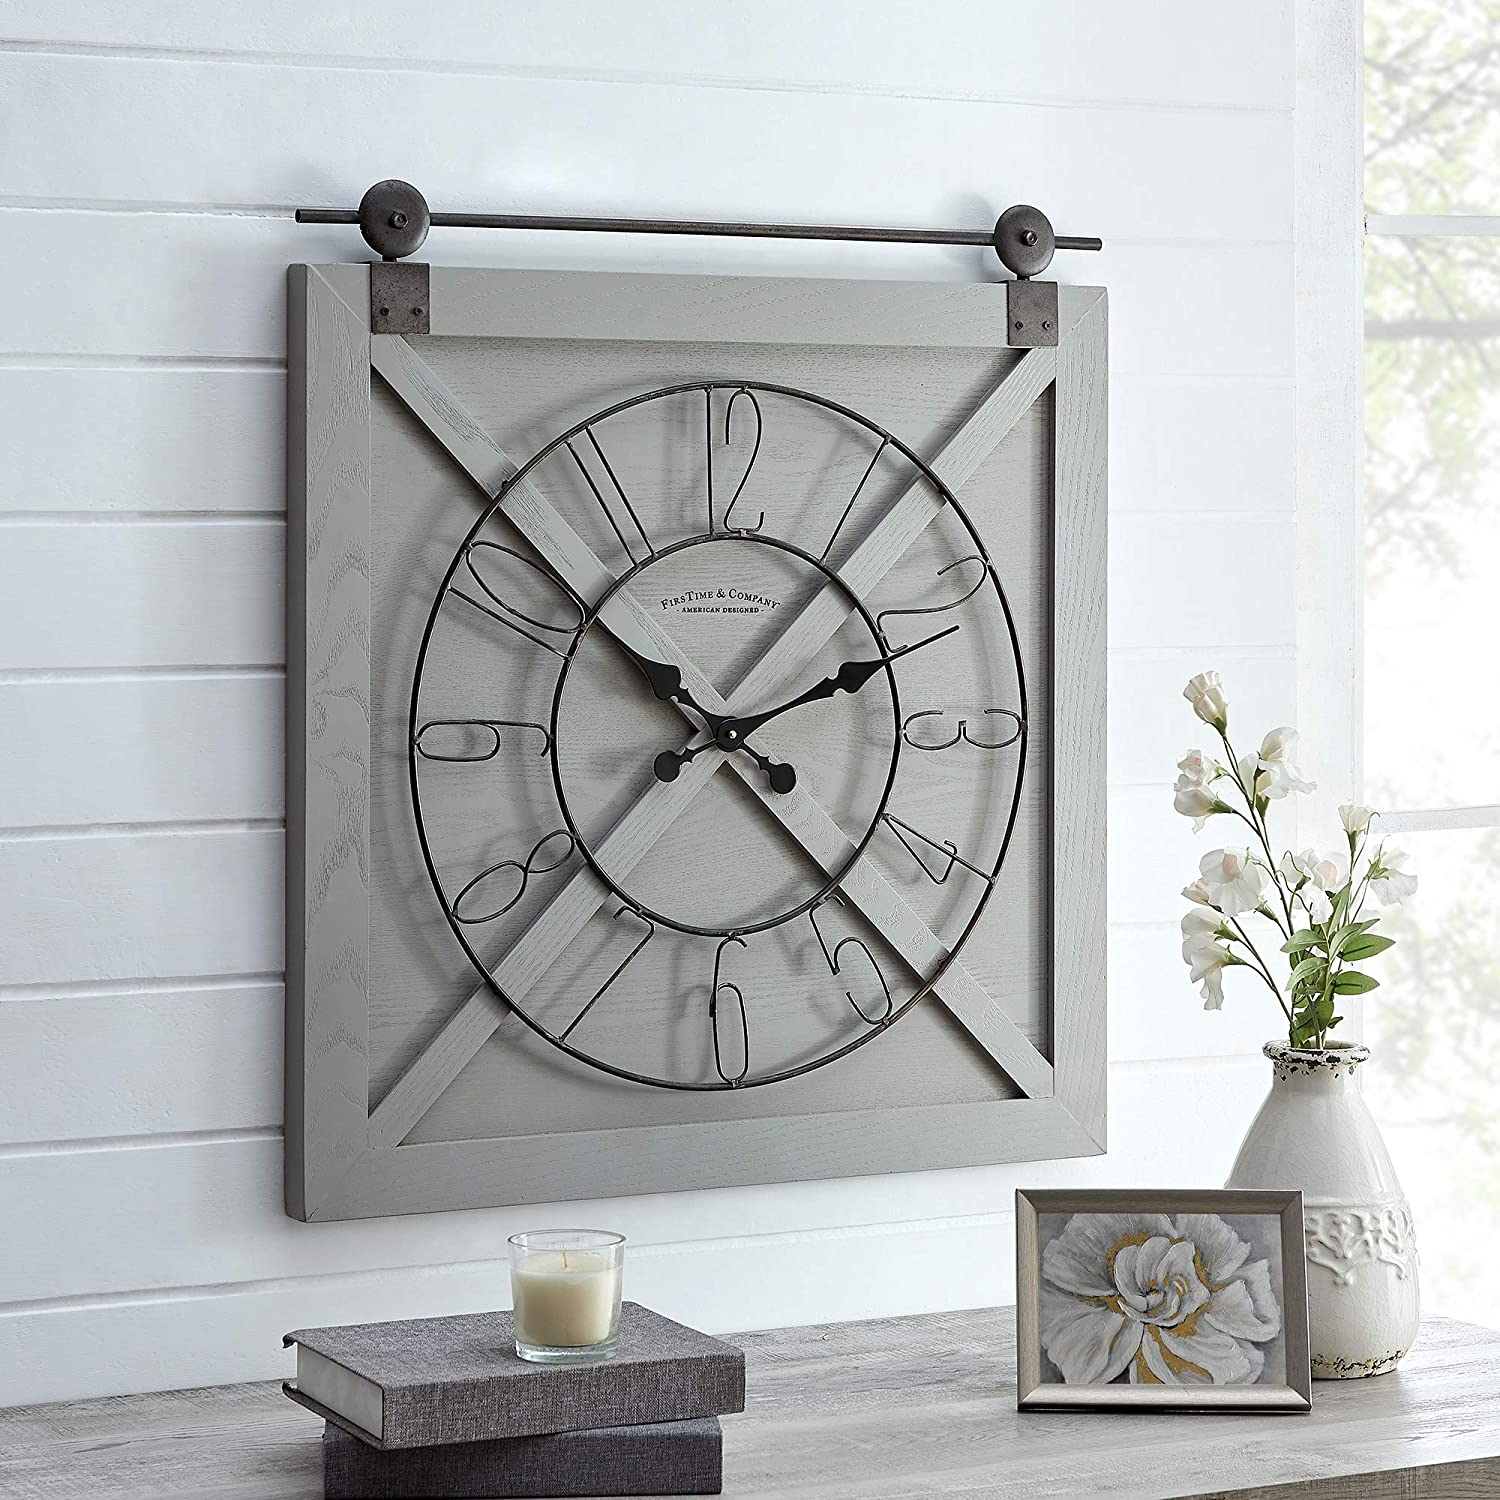 Black Farmstead Barn Door Wall Clock American Designed Black 27 x 2 x 29 inches FirsTime /& Co